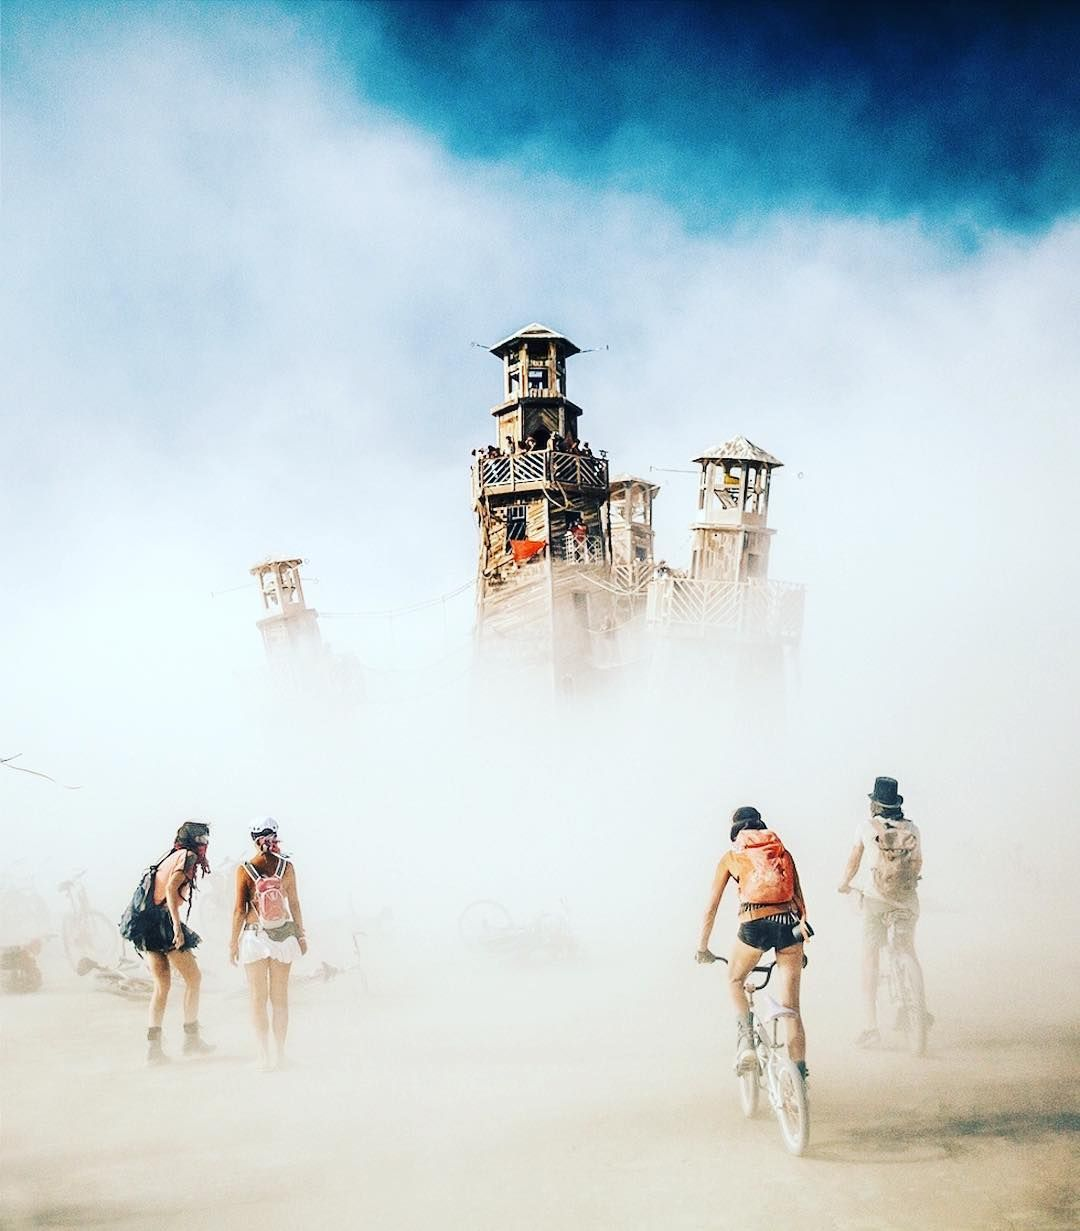 @rslobodan 70,000 people gather for the annual Burning Man arts and music festival in the Black Rock Desert of Nevada. Burning Man Festival is one of the world's biggest and most popular festivals. Since 1986, revelers from far and wide have trekked to the temporarily constructed Black Rock City,